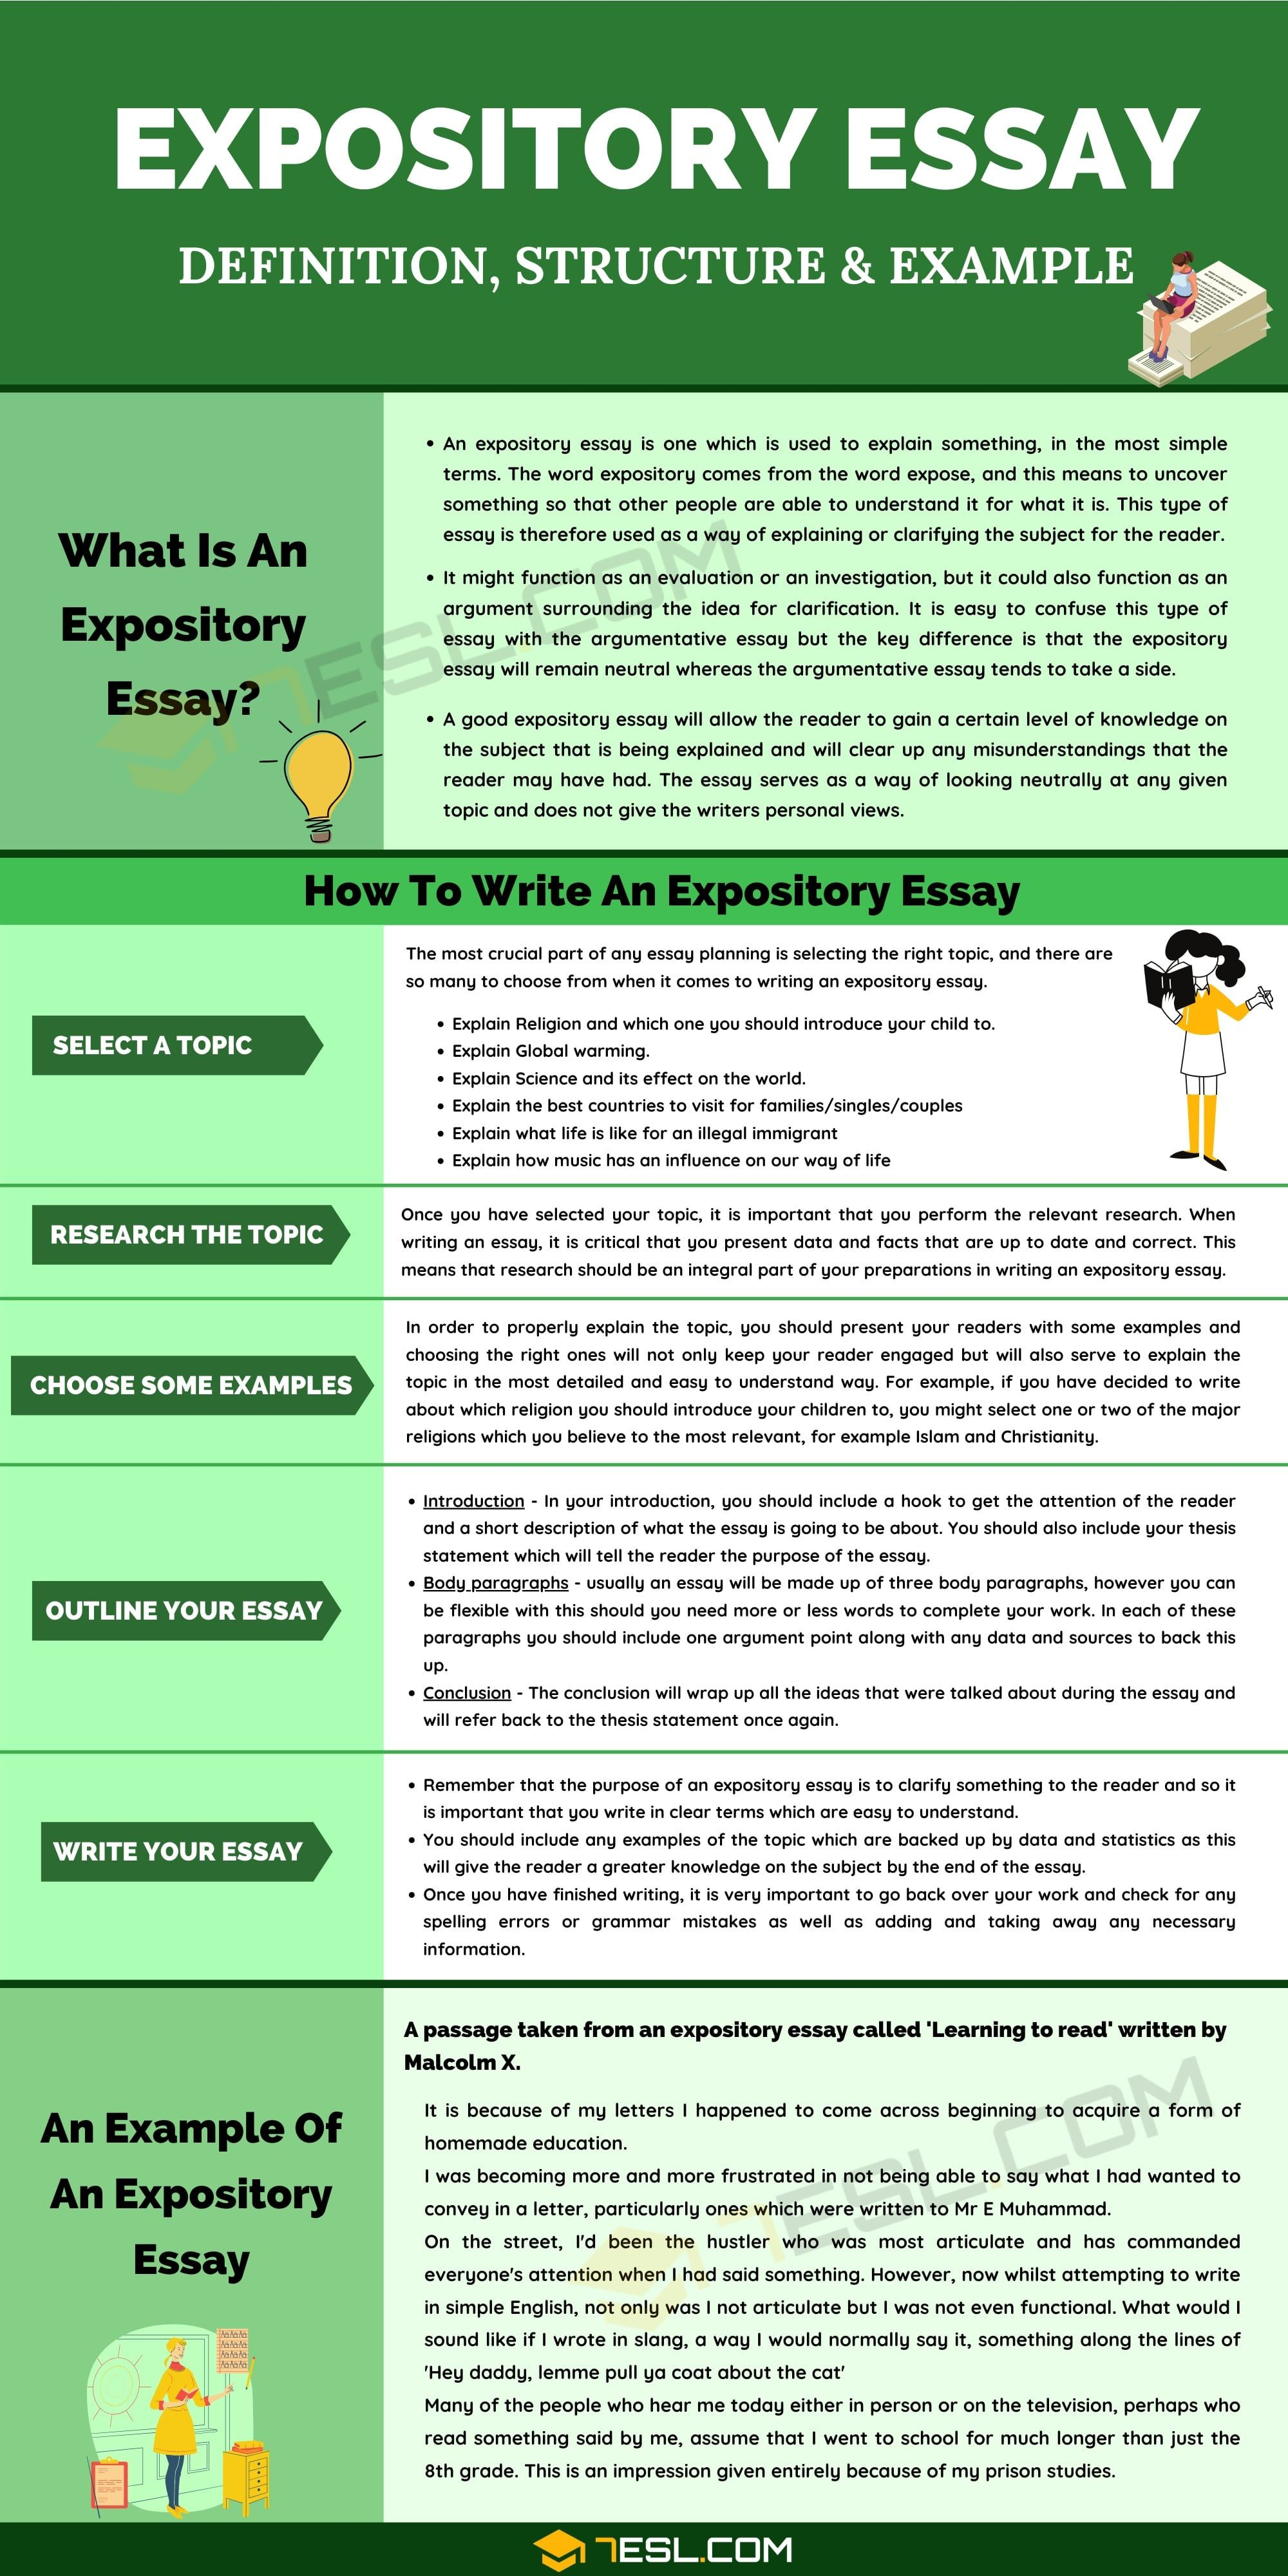 Expository Essay Definition Outline Topics Examples Of Expository Essays 7esl Expository Essay Expository Essay Examples Essay Writing Skills